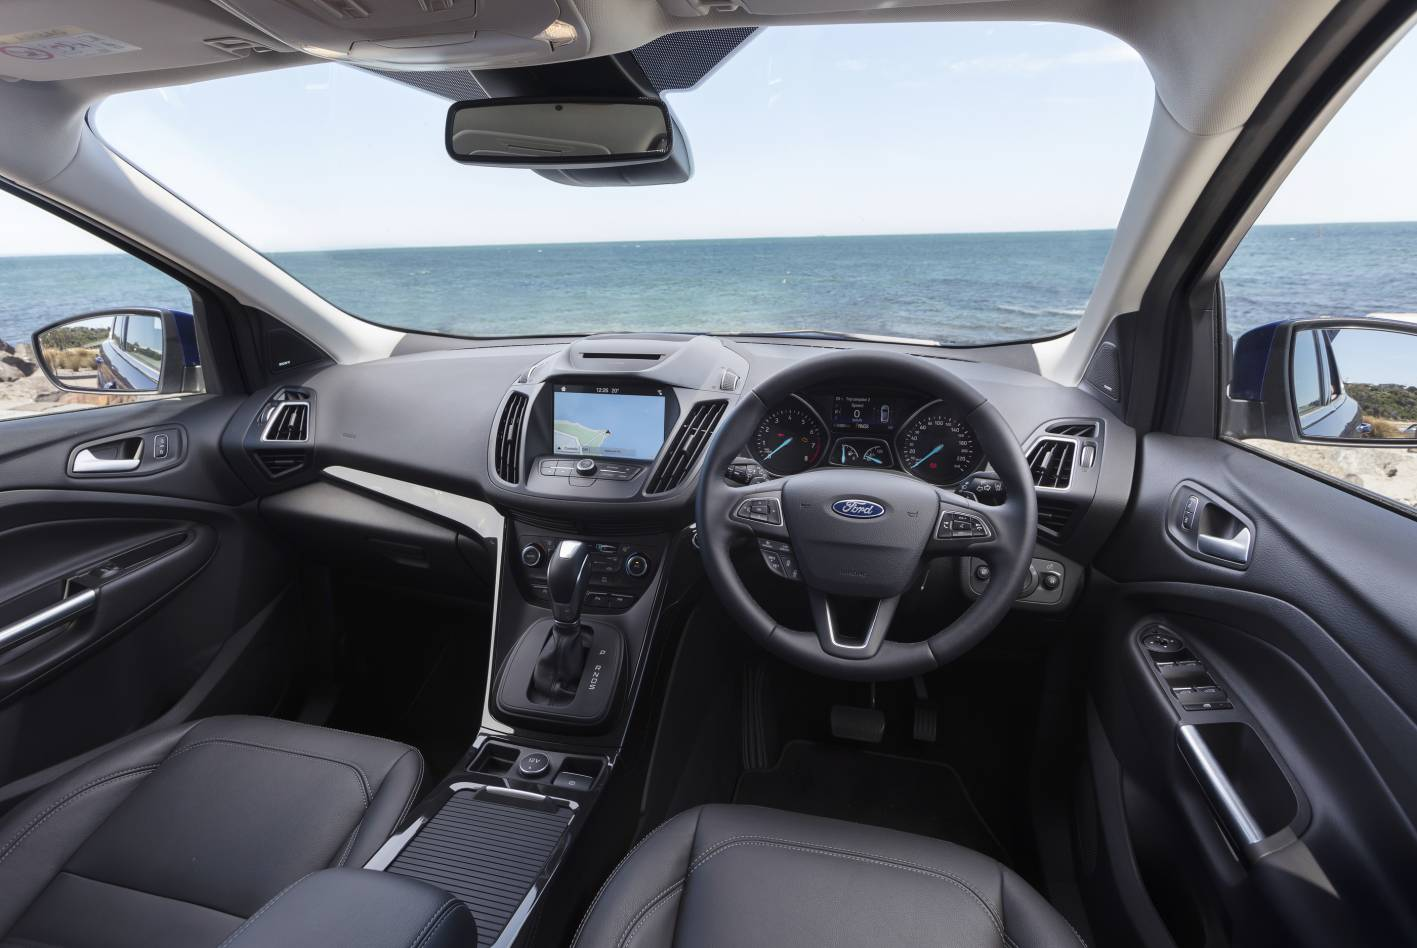 2017 Ford Escape Boosts Appeal With Keener Pricing And More Kit